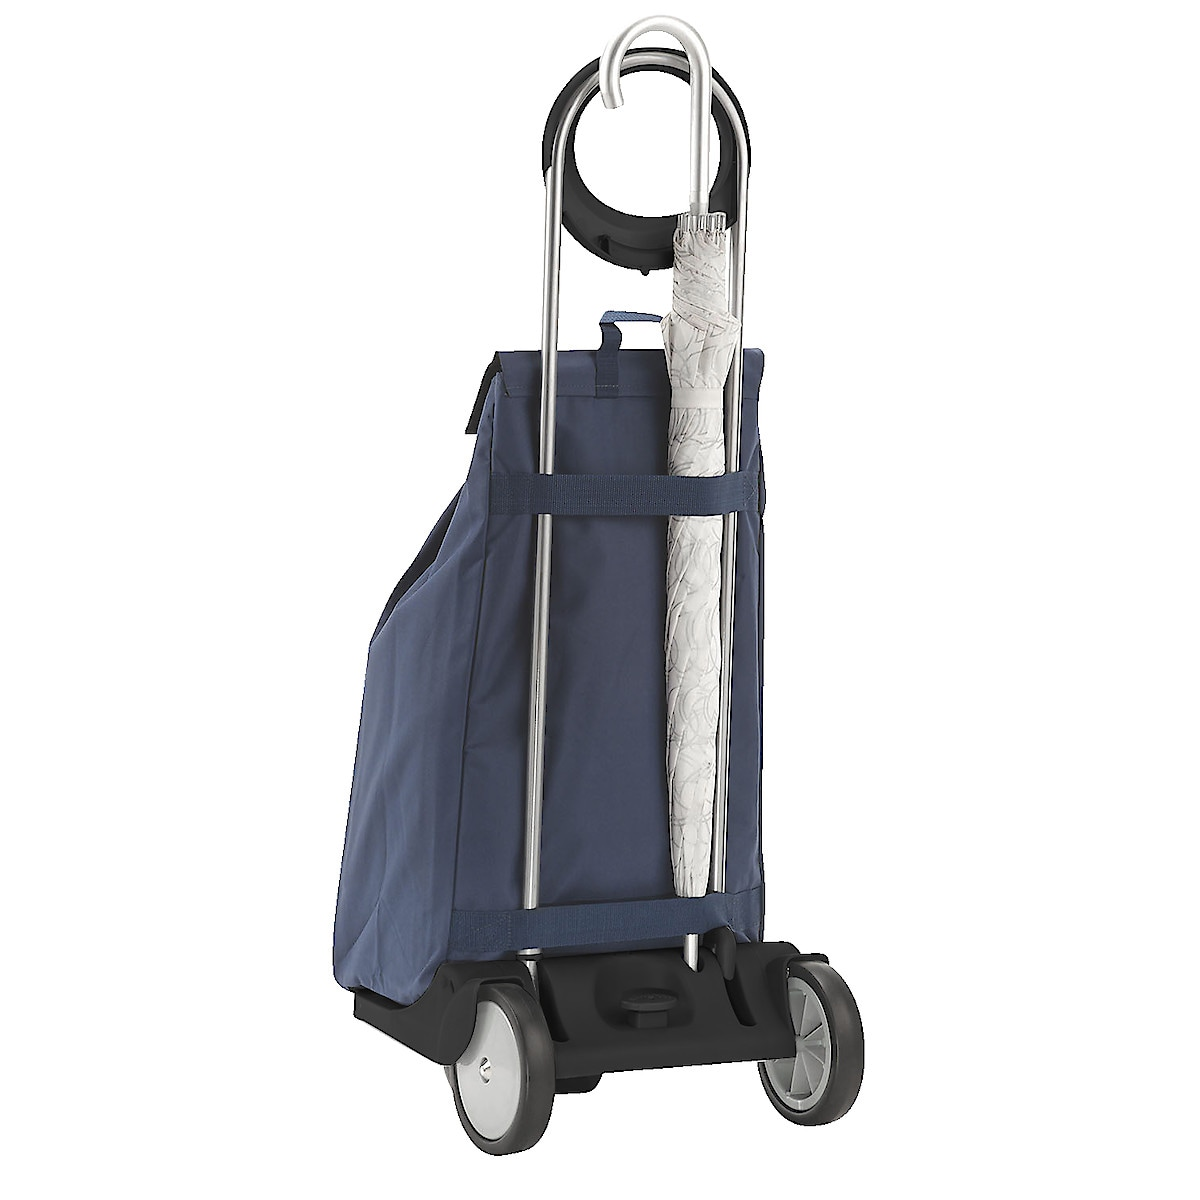 Gimi Market 48-Litre Shopping Trolley